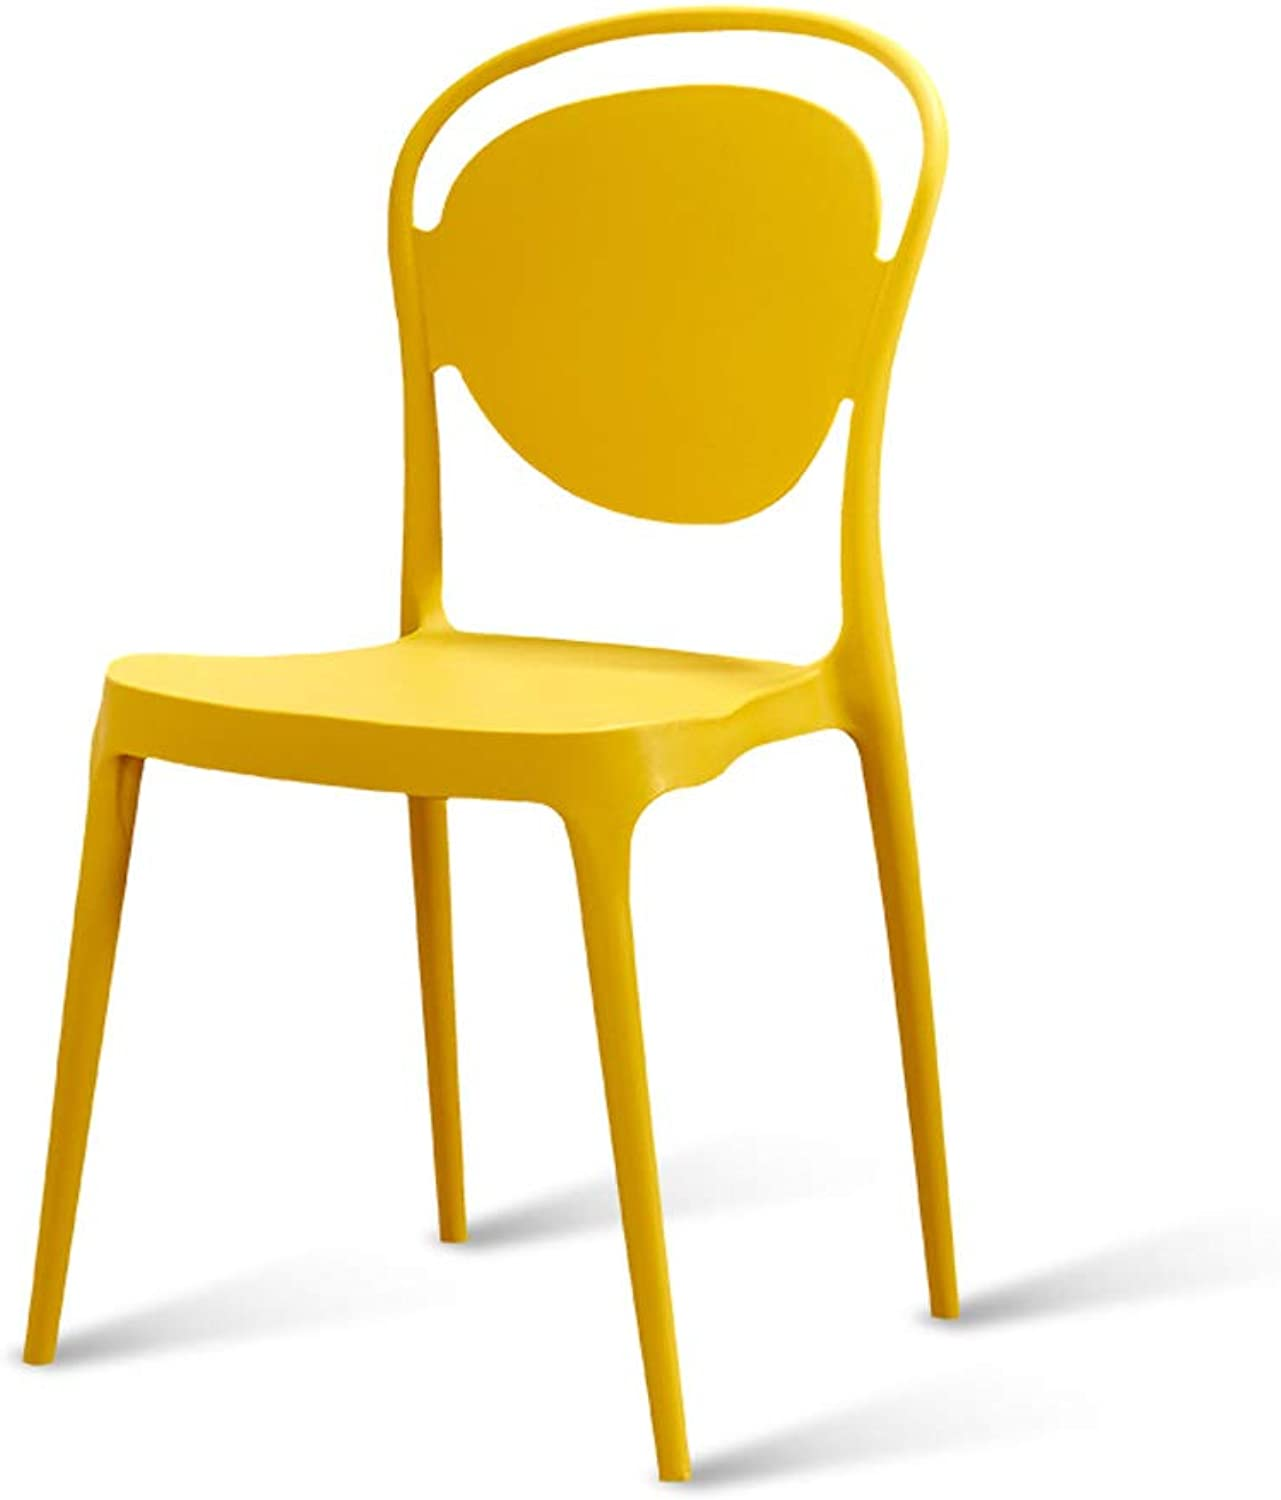 Modern Nordic Simple Dining Chair Backrest Creative Office to Discuss Chairs Adult Plastic Fashion Restaurant Chair Stool Yellow